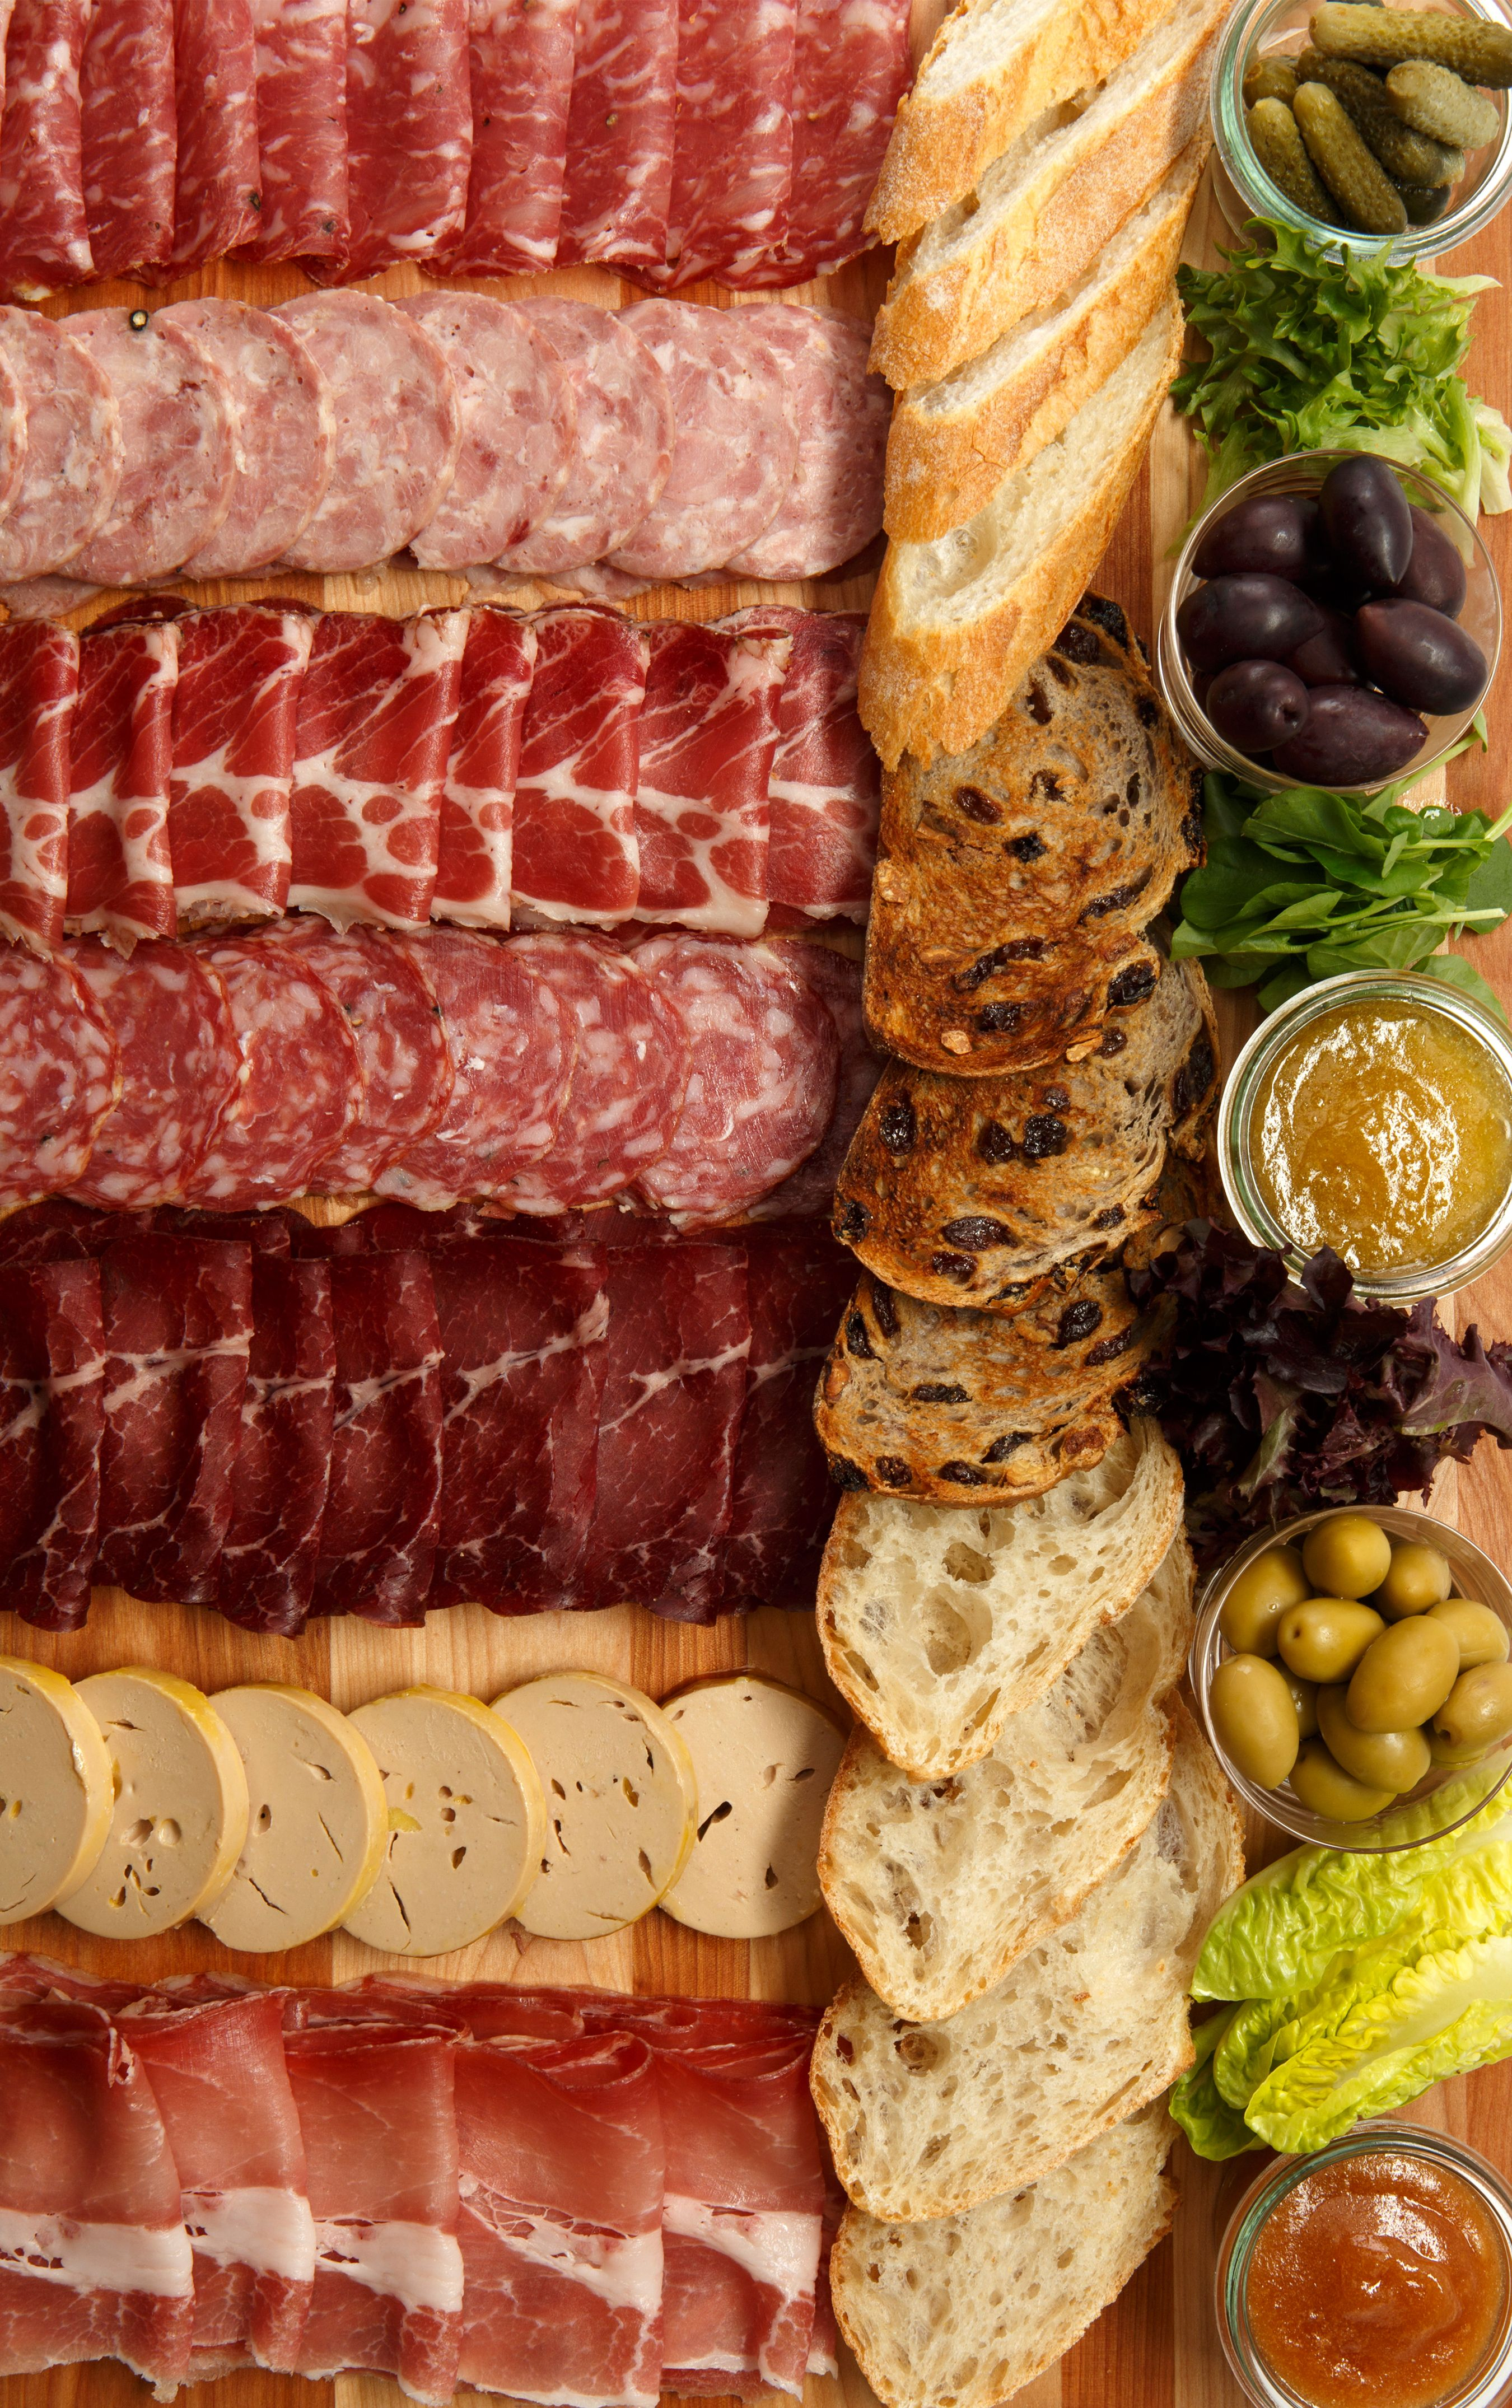 Food Charcuterie Board Cured Meats And Pates Accompanied By